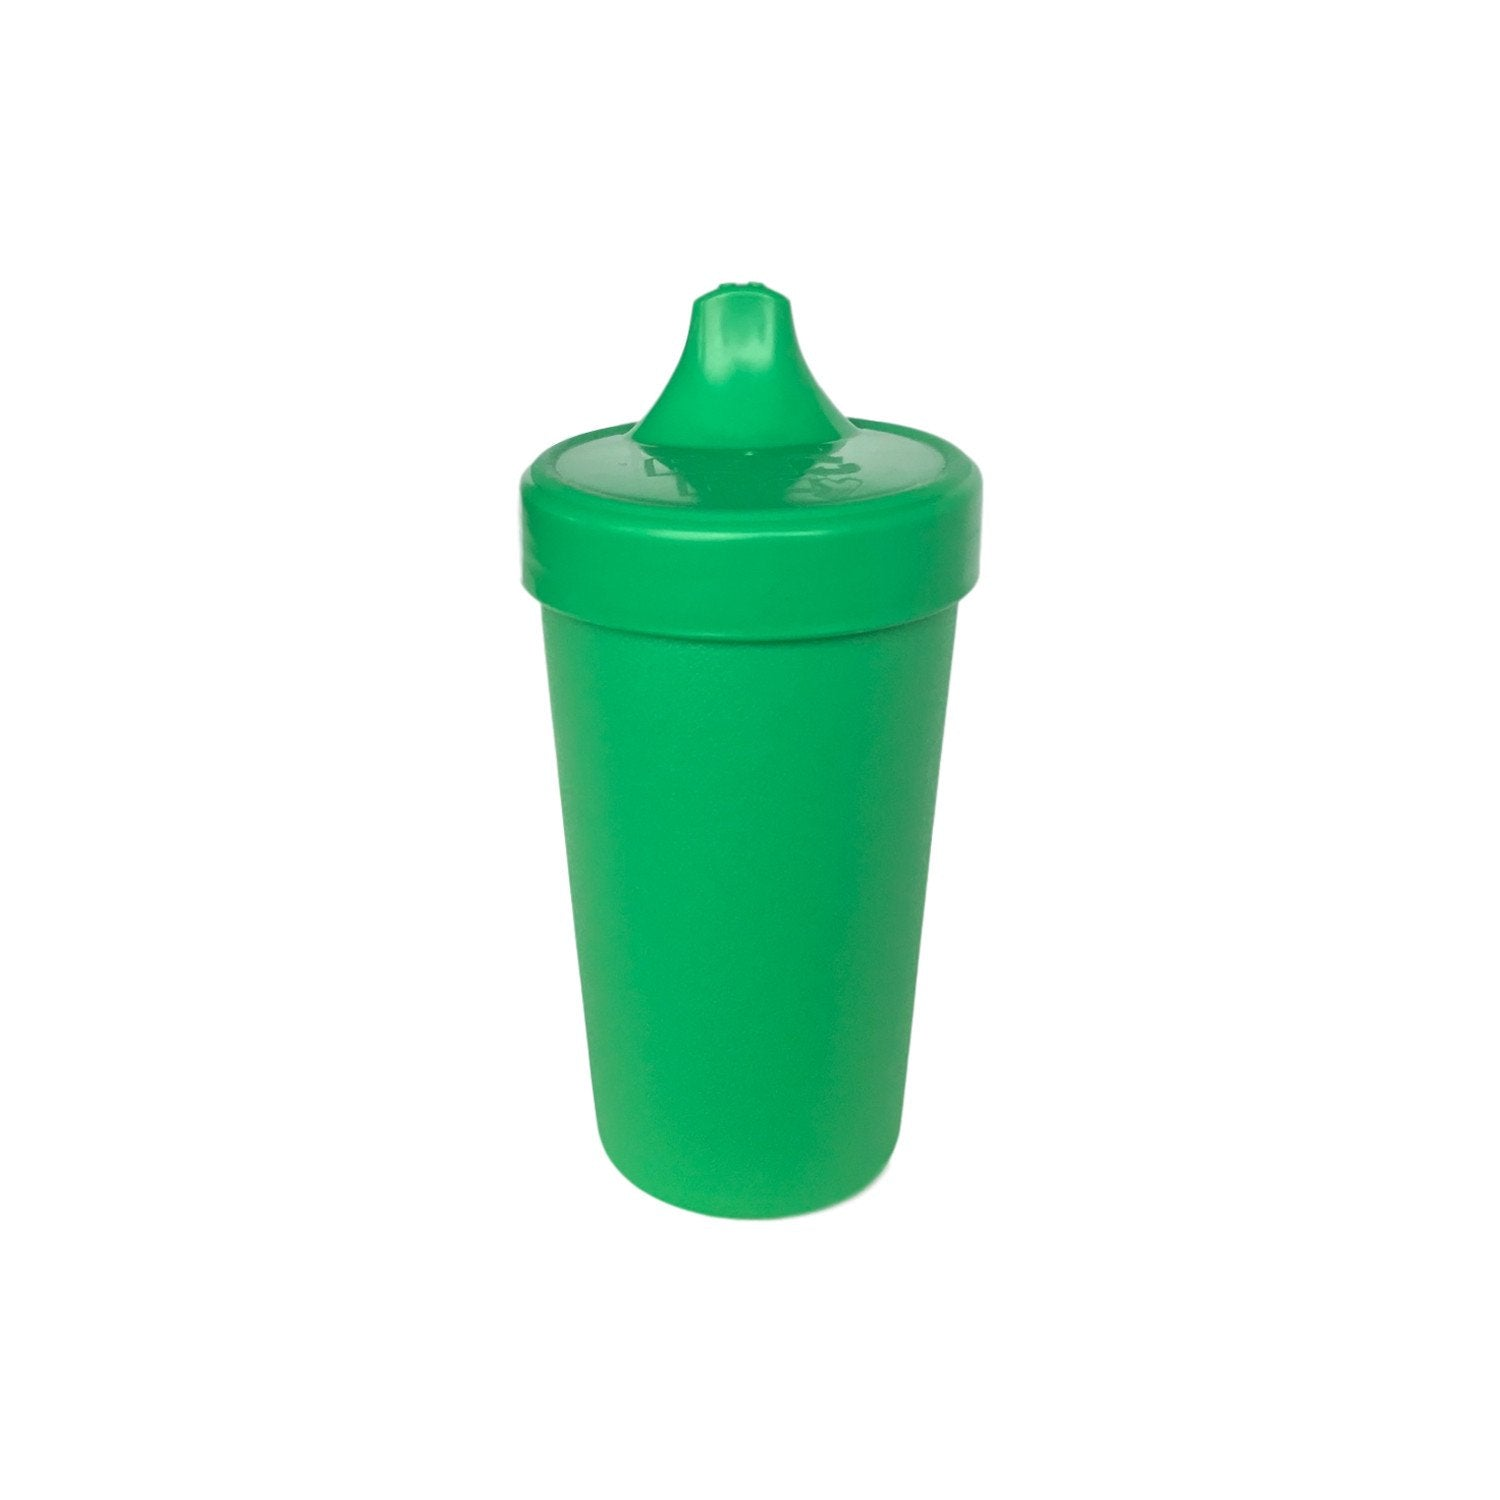 Replay Sippy Cup Replay Sippy Cups Kelly Green at Little Earth Nest Eco Shop